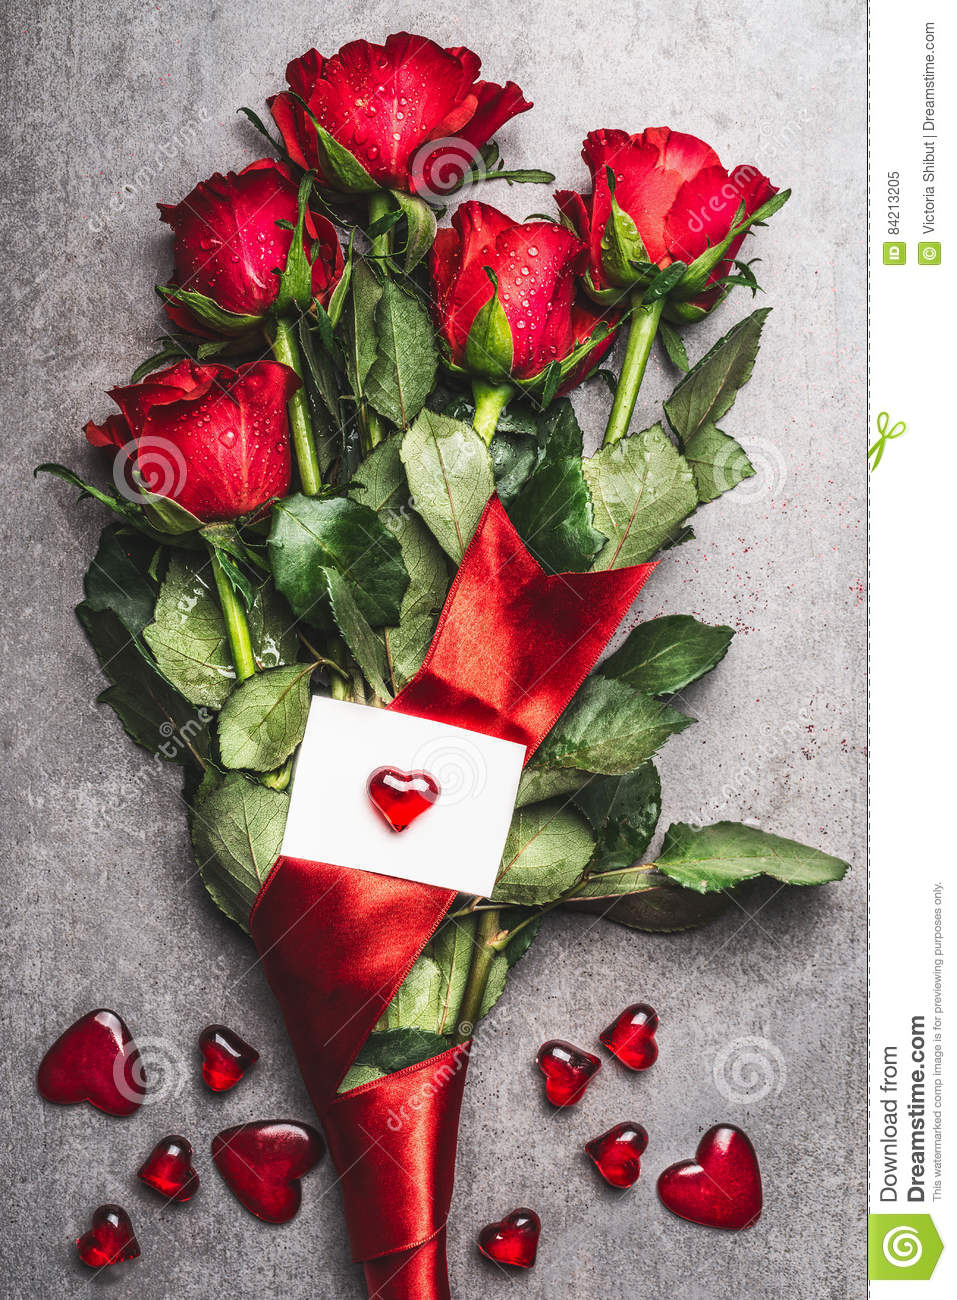 Great red roses bouquet with loop and greeting card with heart great red roses bouquet with loop and greeting card with heart top view love symbol buycottarizona